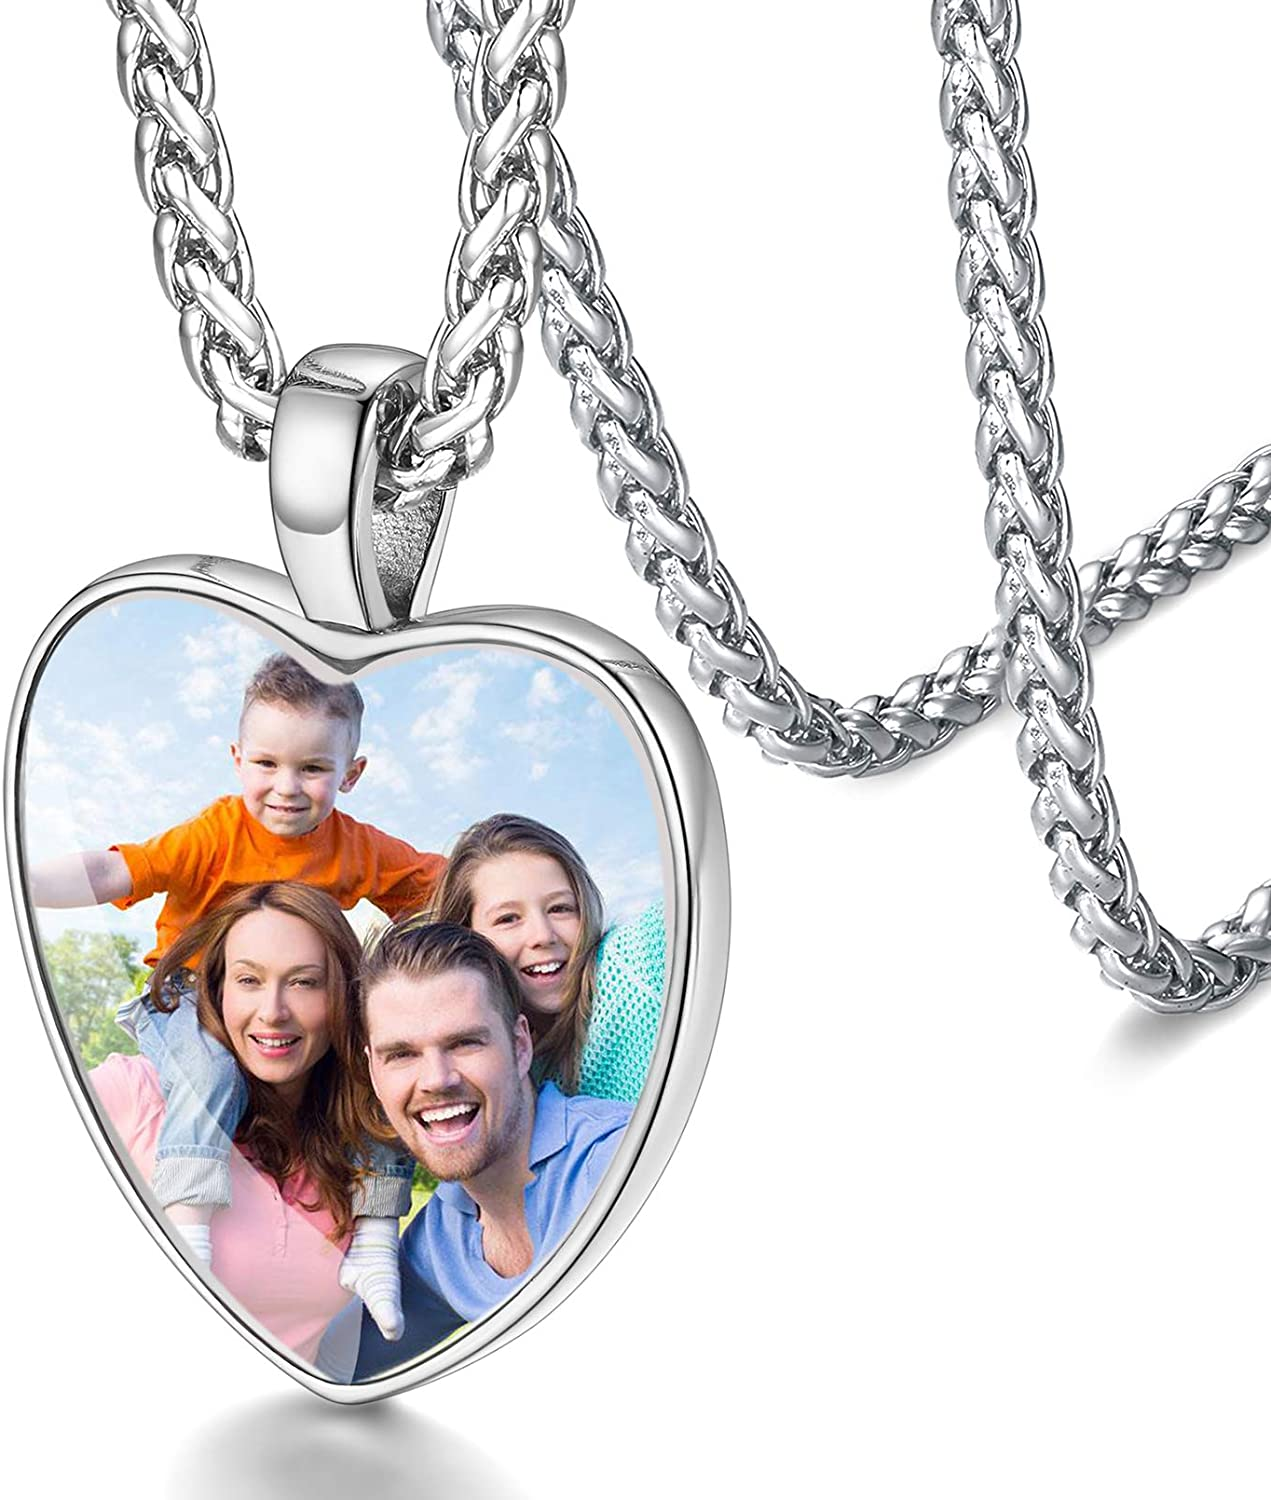 FaithHeart Personalized Photo Necklace Vintage Retro Pendant, Stainless Steel Custom Picture/Image Memorial Jewelry